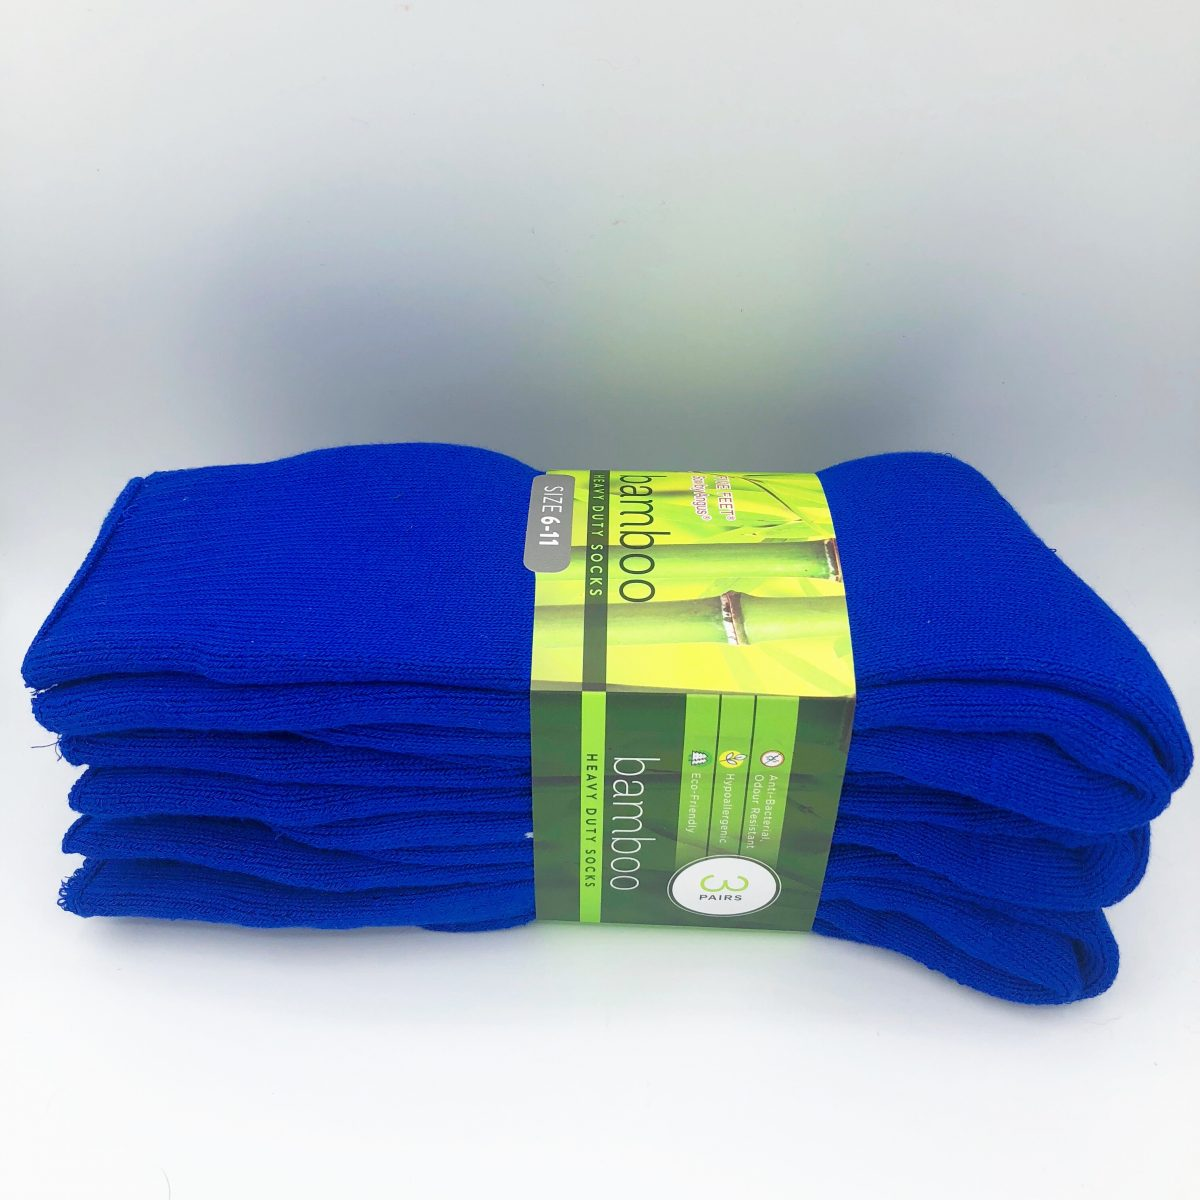 Bamboo Heavy Duty Socks - 3 Pairs Pack - Royal Blue